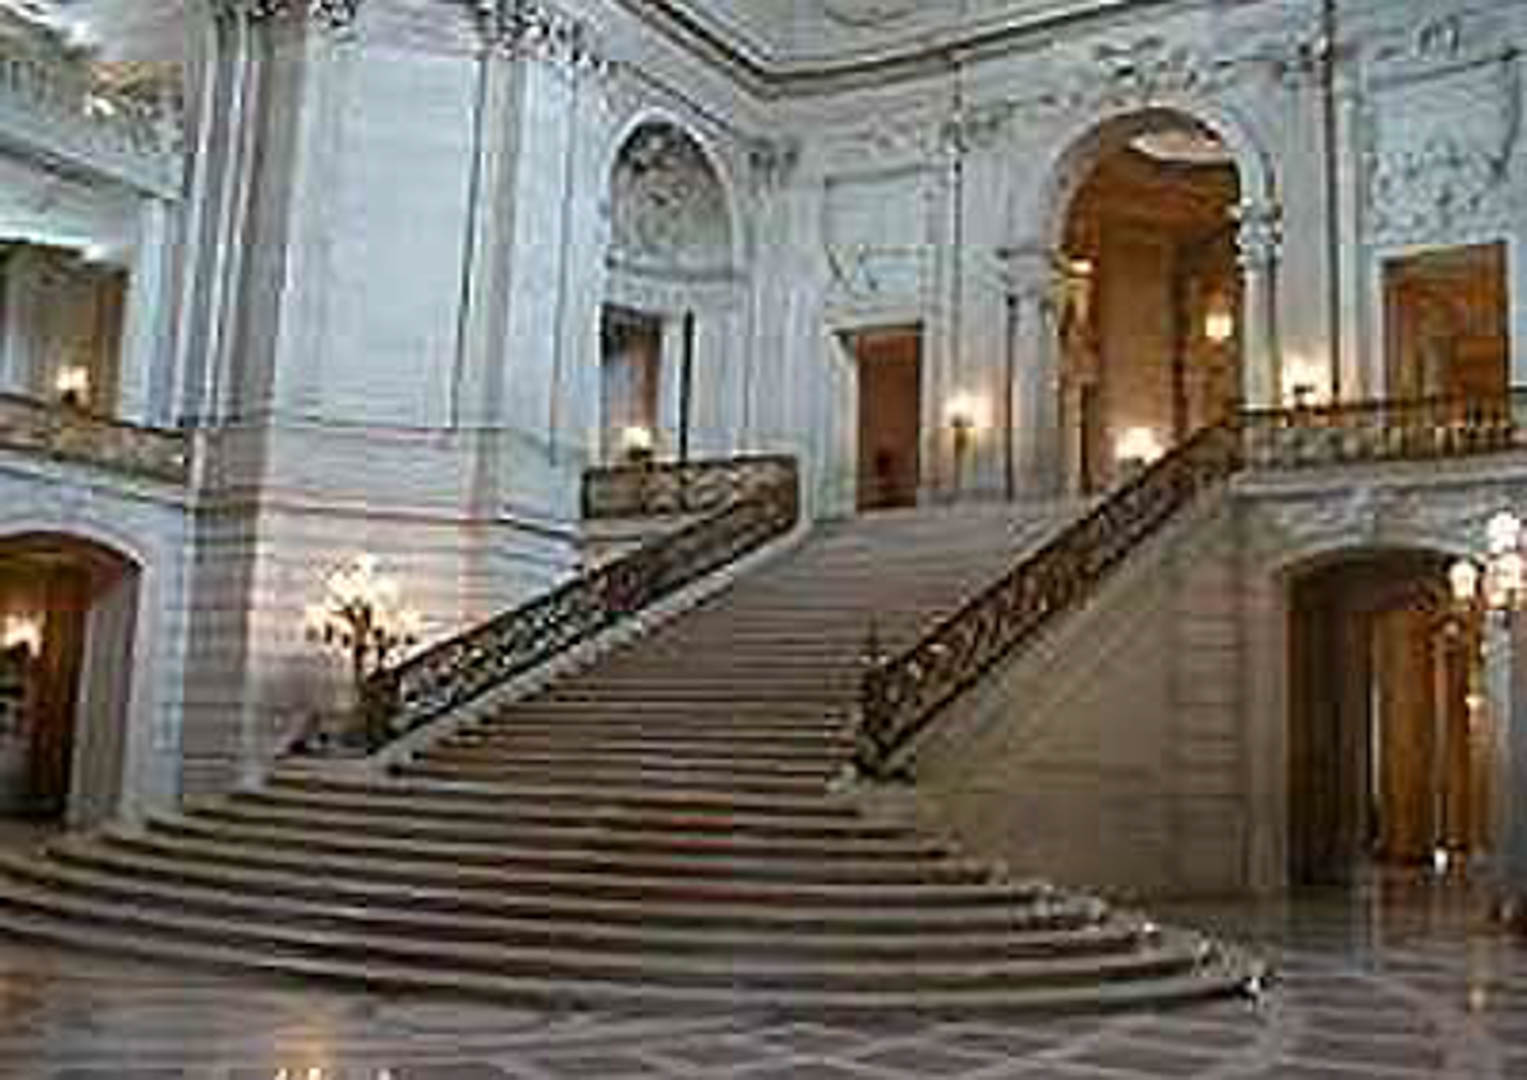 Project:  San Francisco City Hall   Location:  San Francisco, California   Description:  The interior work at the City Hall building involved removal and replacement of historical stone, redesign of rooms to meet ADA recommendations, and installation of new marble and tile. A proprietary micro-abrasive cleaning technique was also used as can be seen in the next two photos.